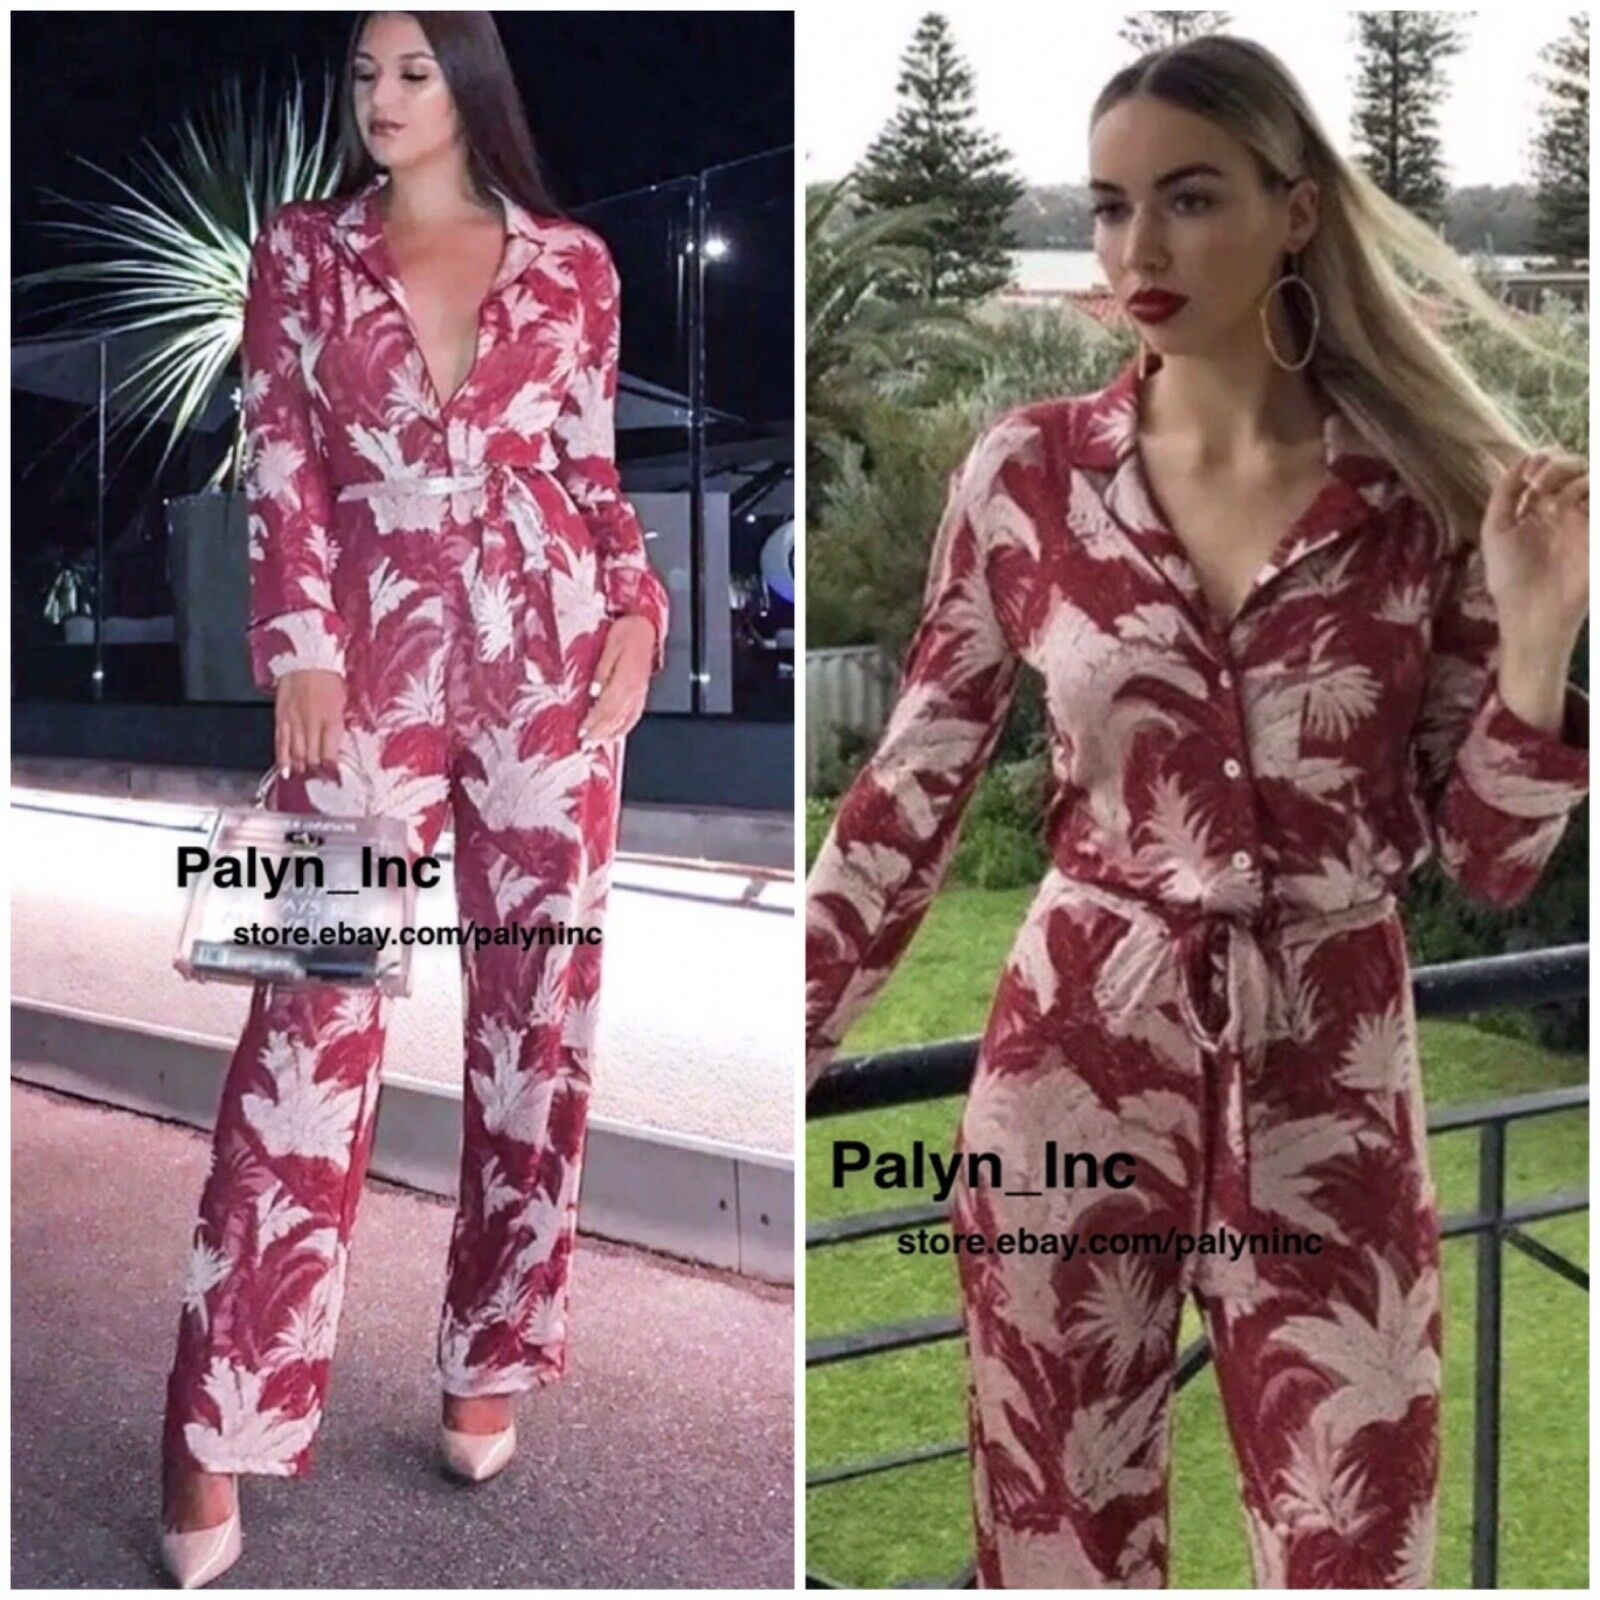 938bd611 NEW Free People FP X Eileen Romper Jumpsuit In Ginger RSP 128 Size Sz 4. NWT  ZARA SS18 REDS FLORAL ...